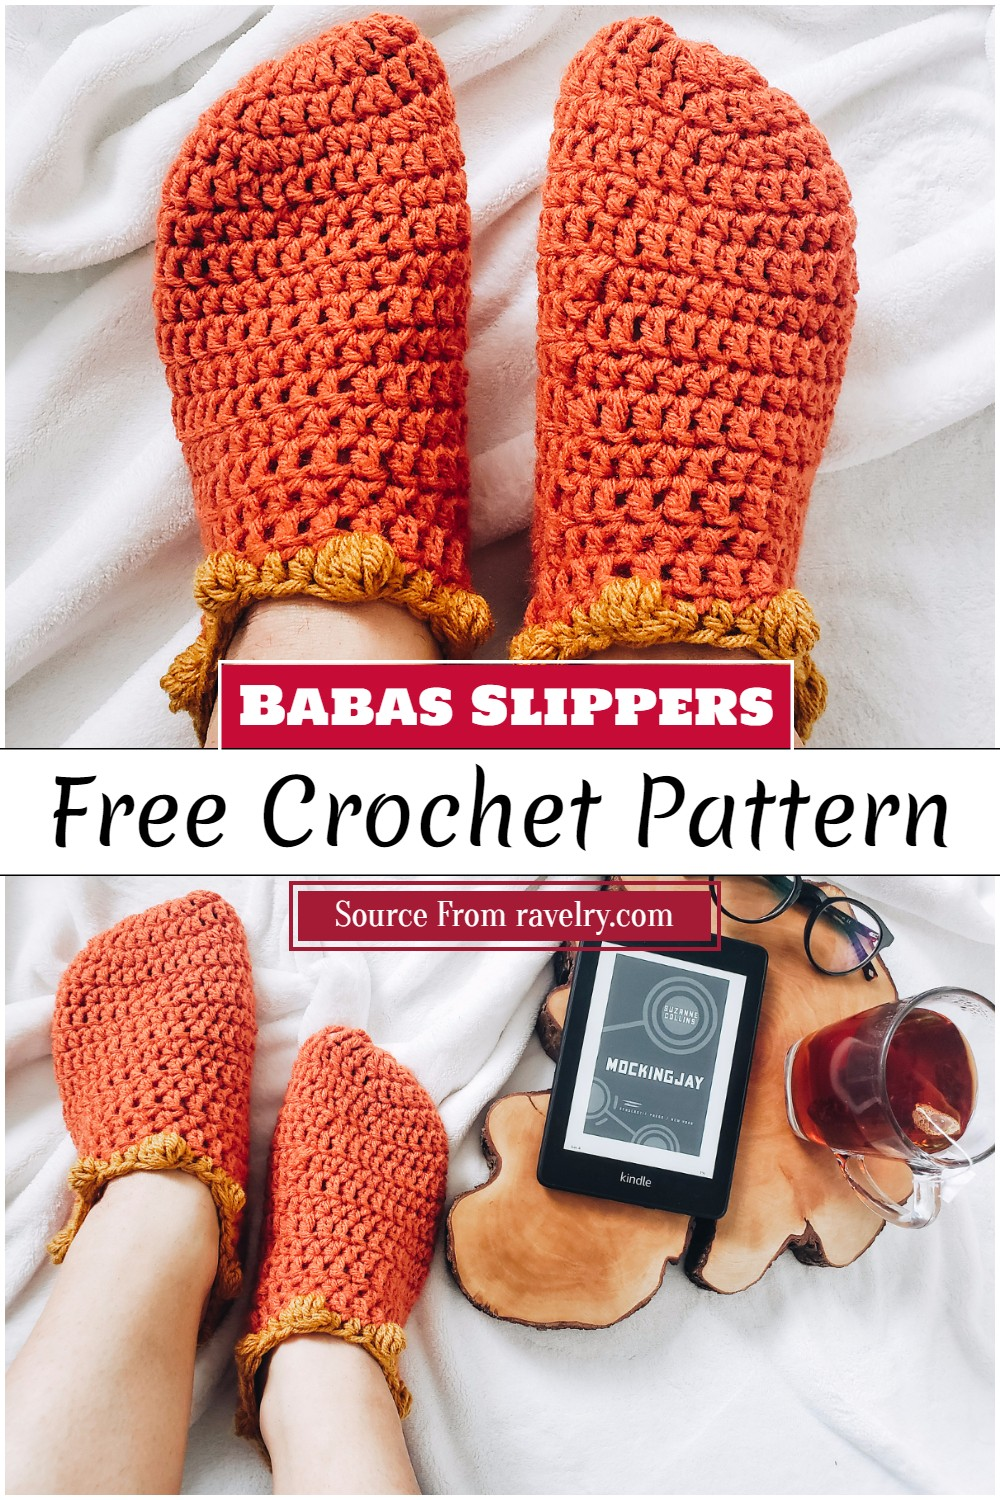 Free Crochet Babas Slippers